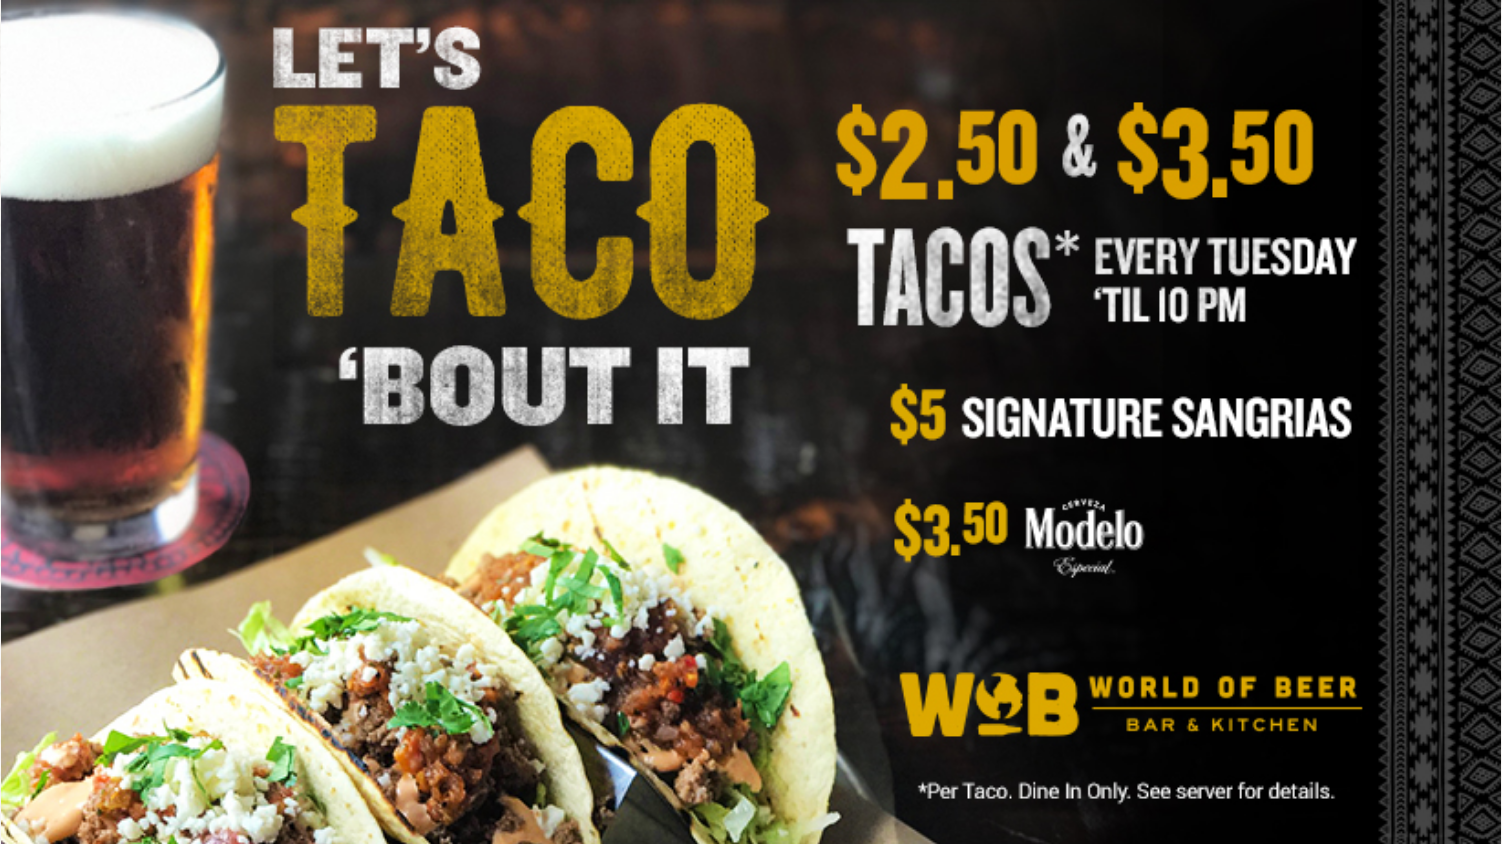 Let's Taco About It!